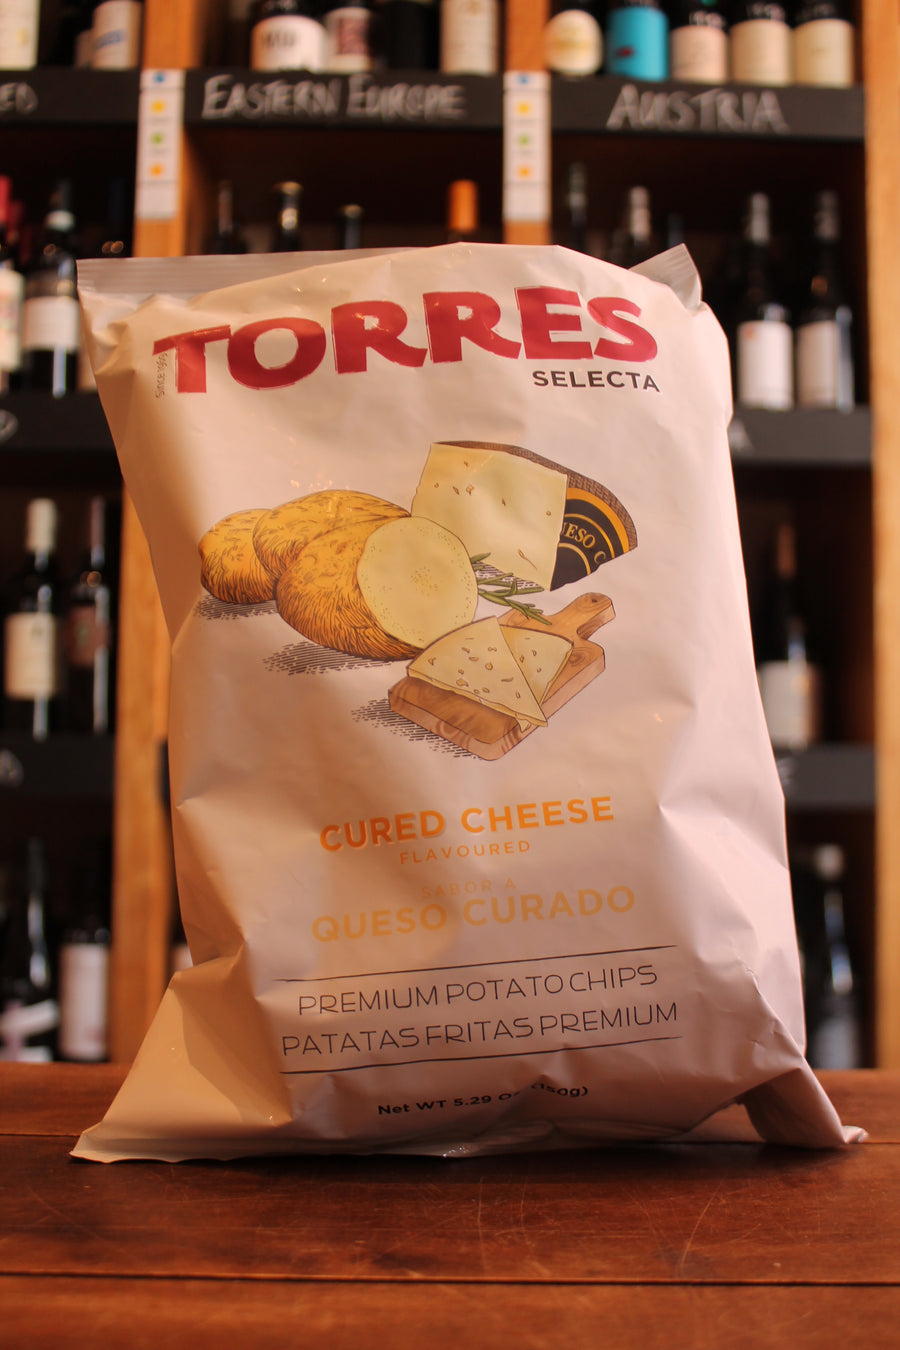 Torres - Cured Cheese - BIG